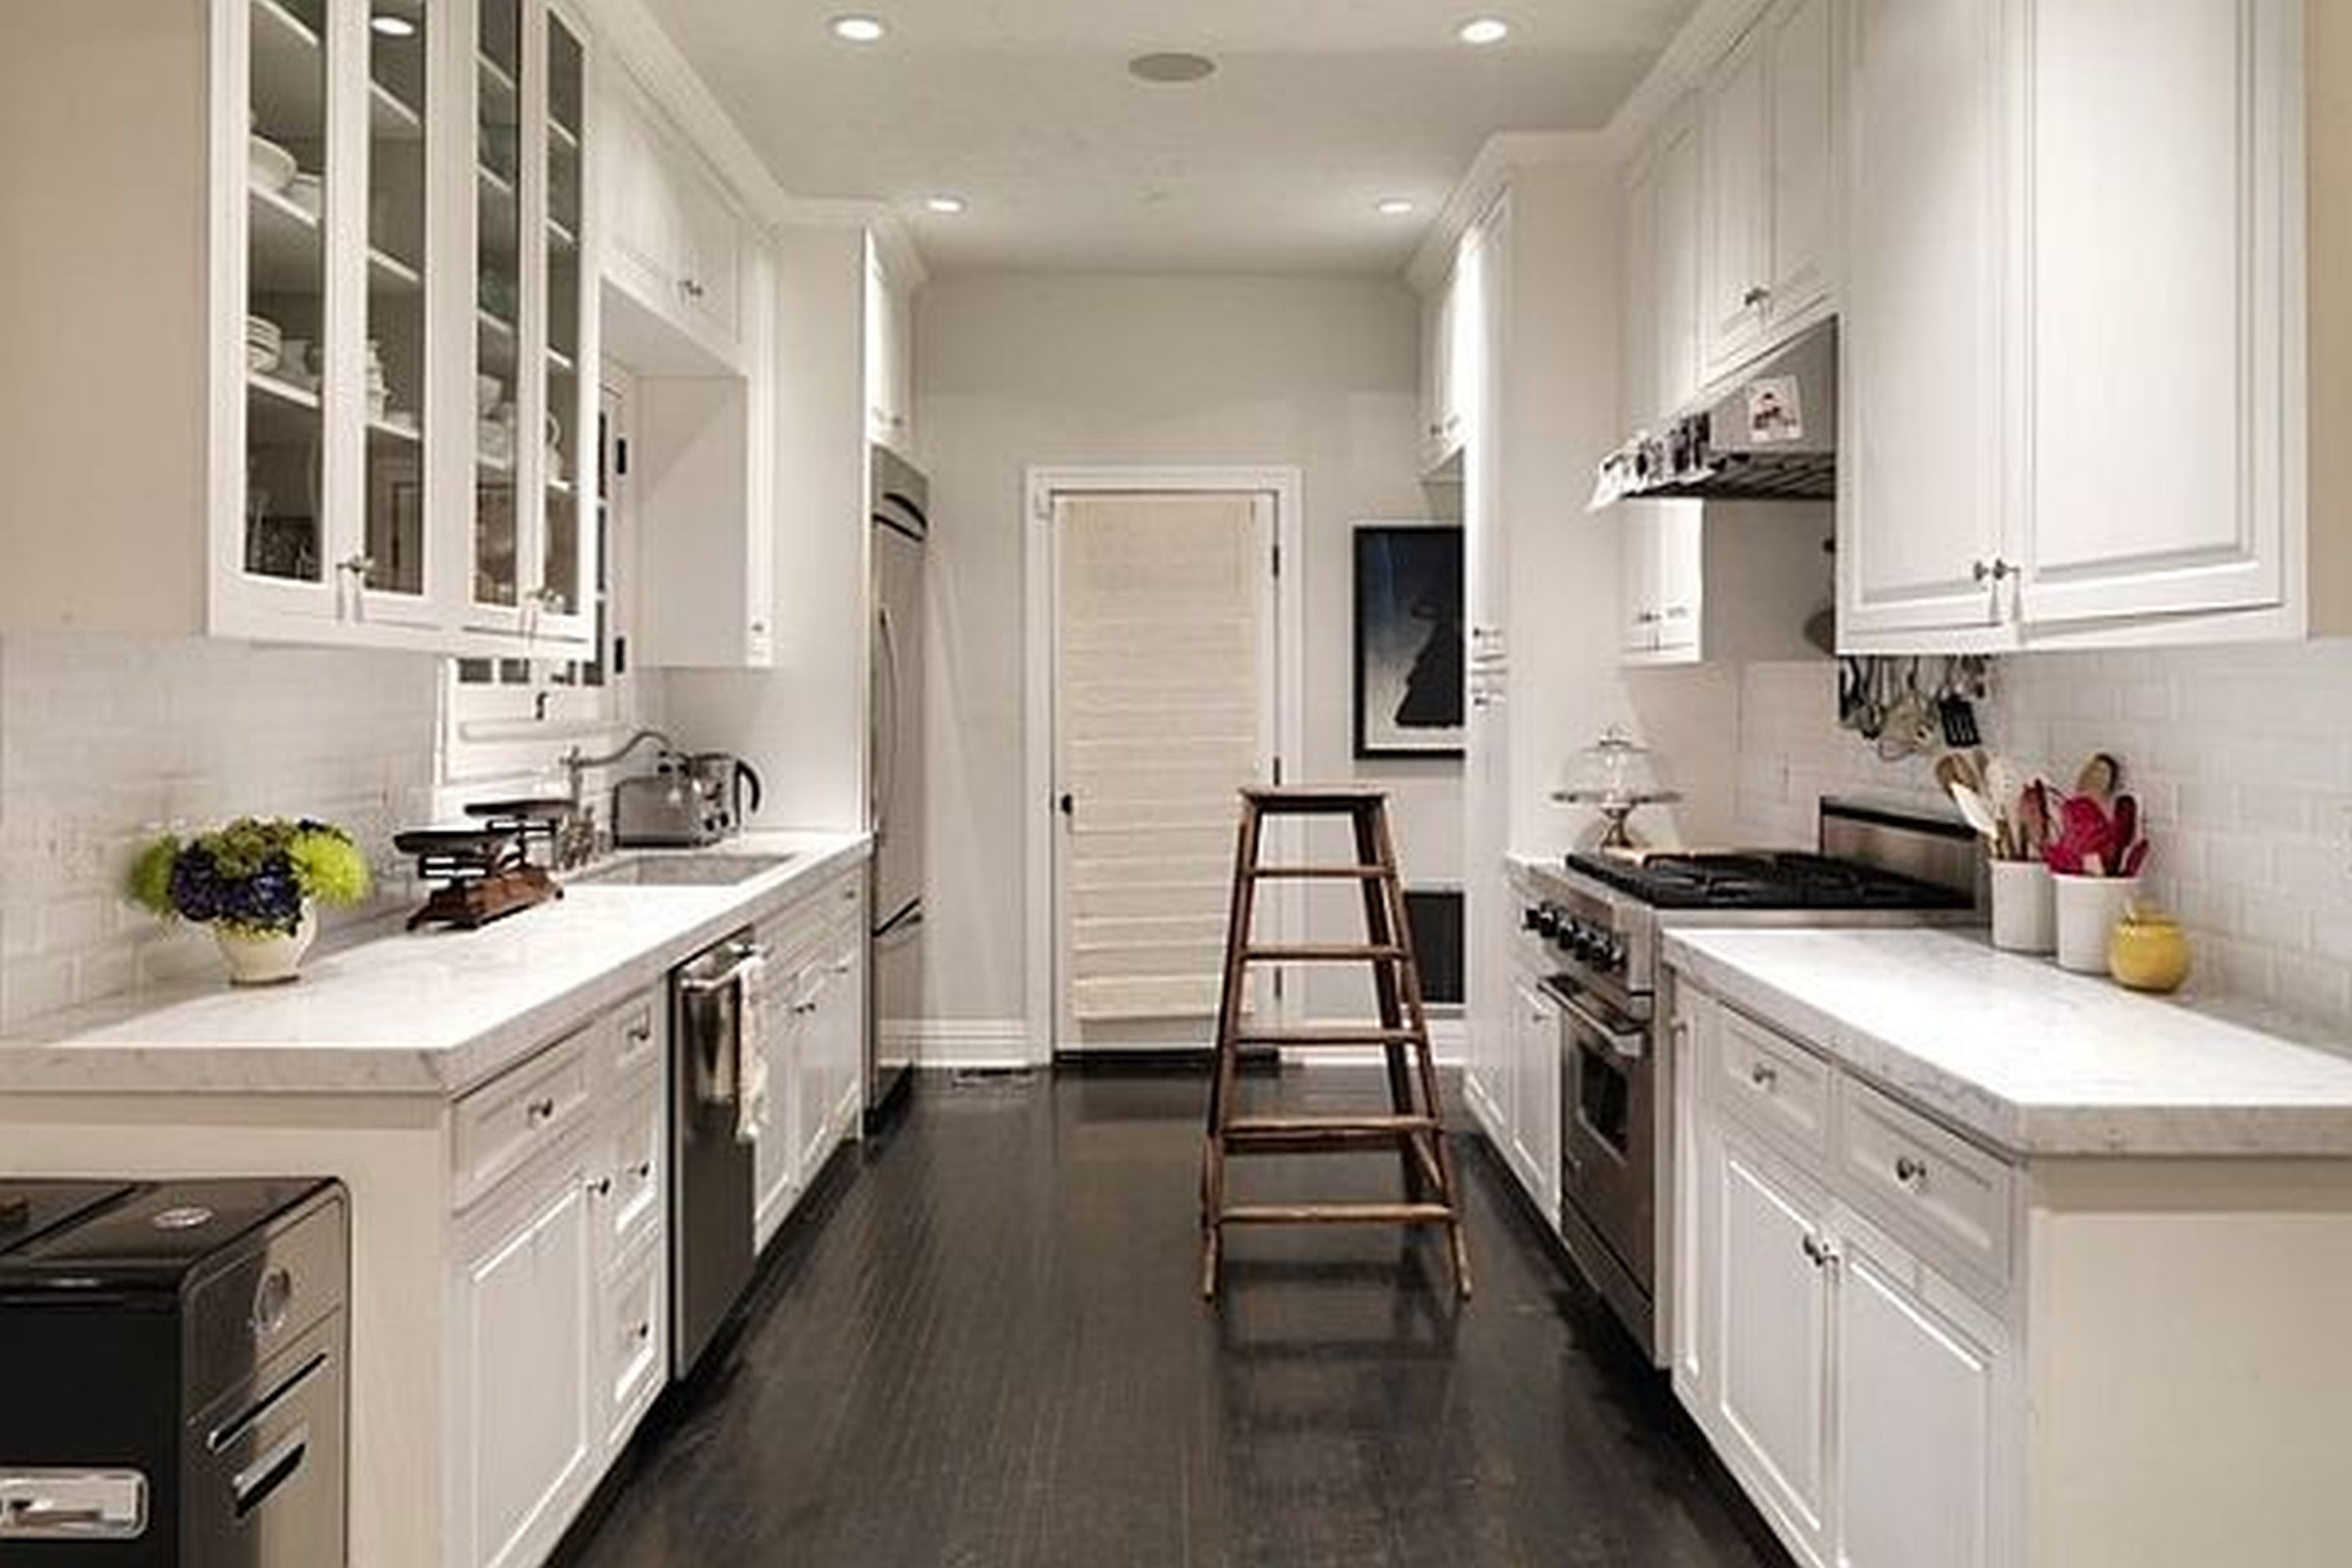 Kitchen Cabinets For Small Galley Kitchen